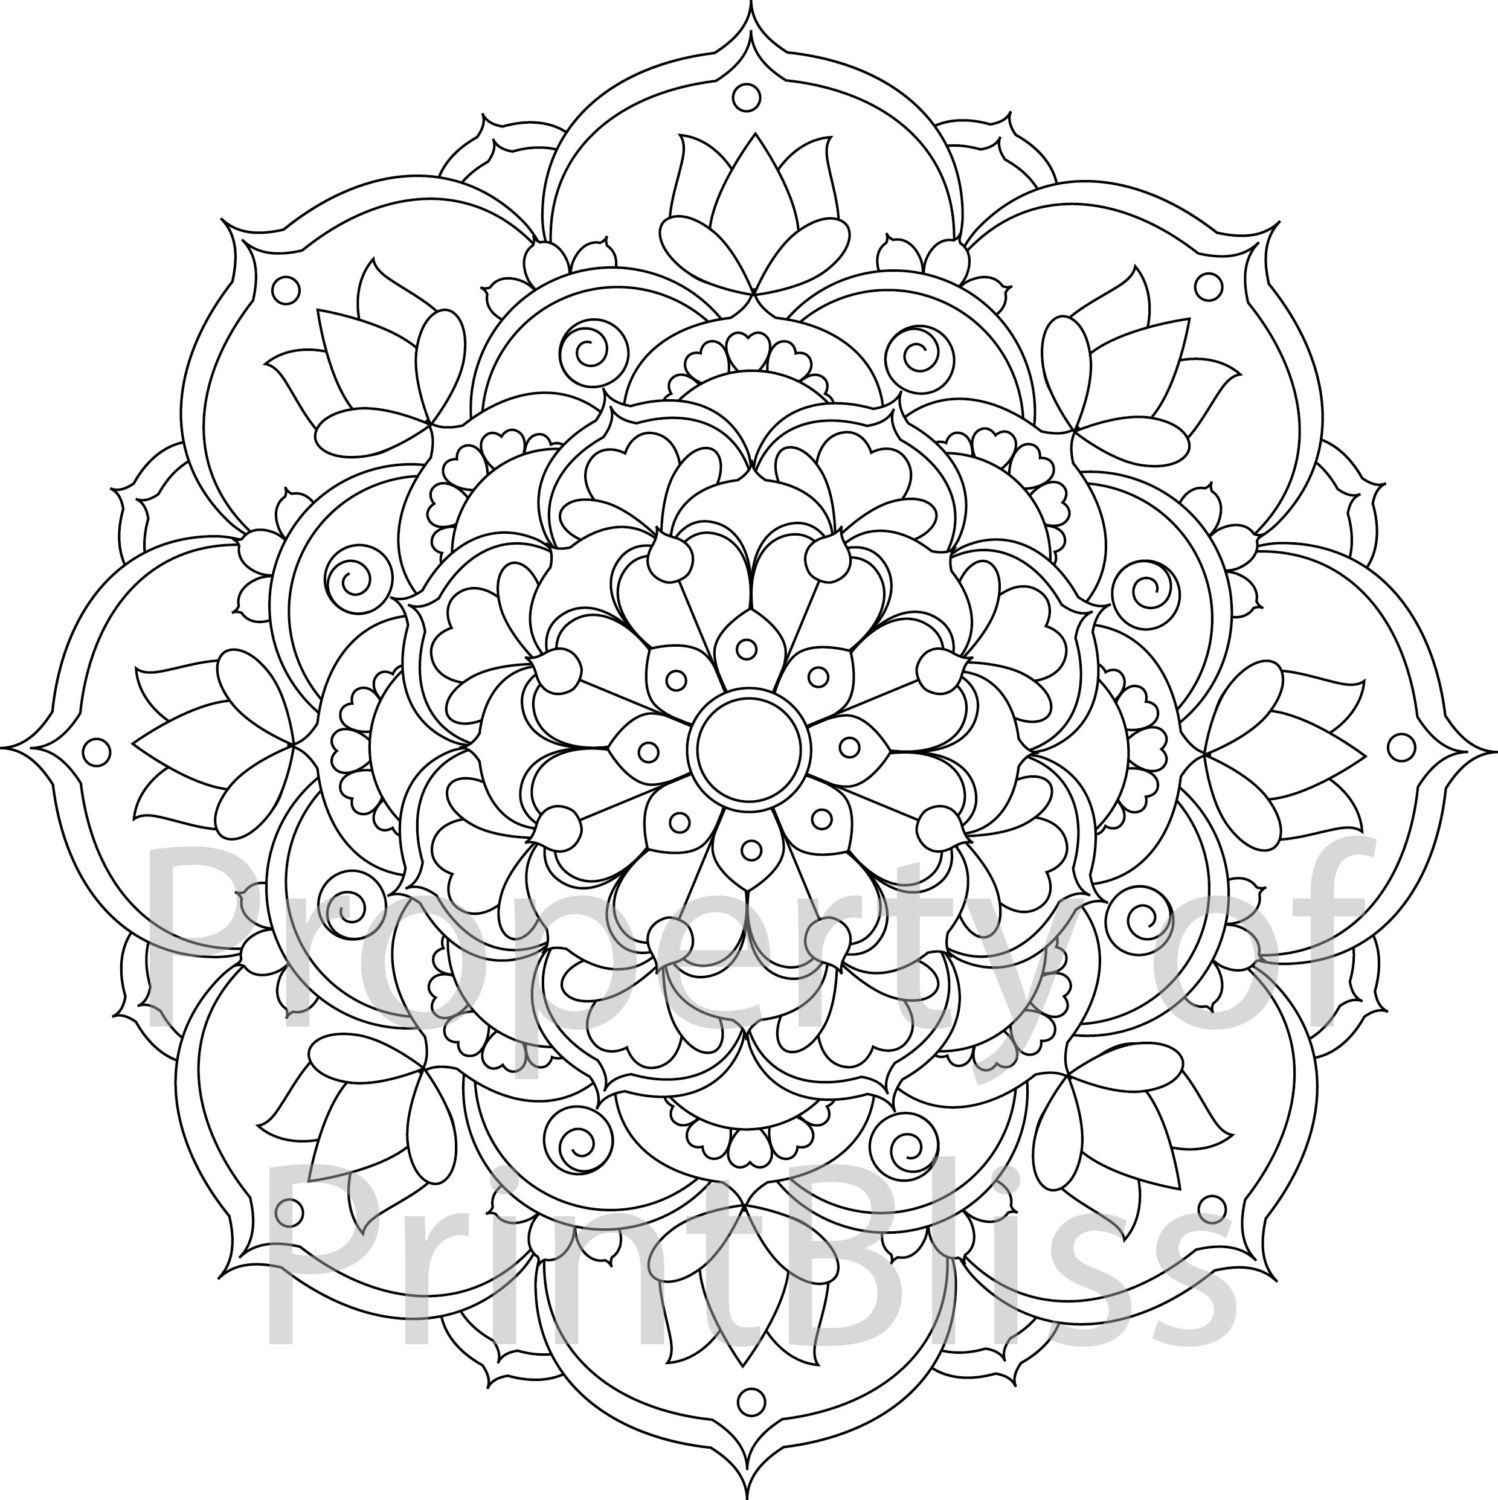 24 Flower Mandala printable coloring page by PrintBliss